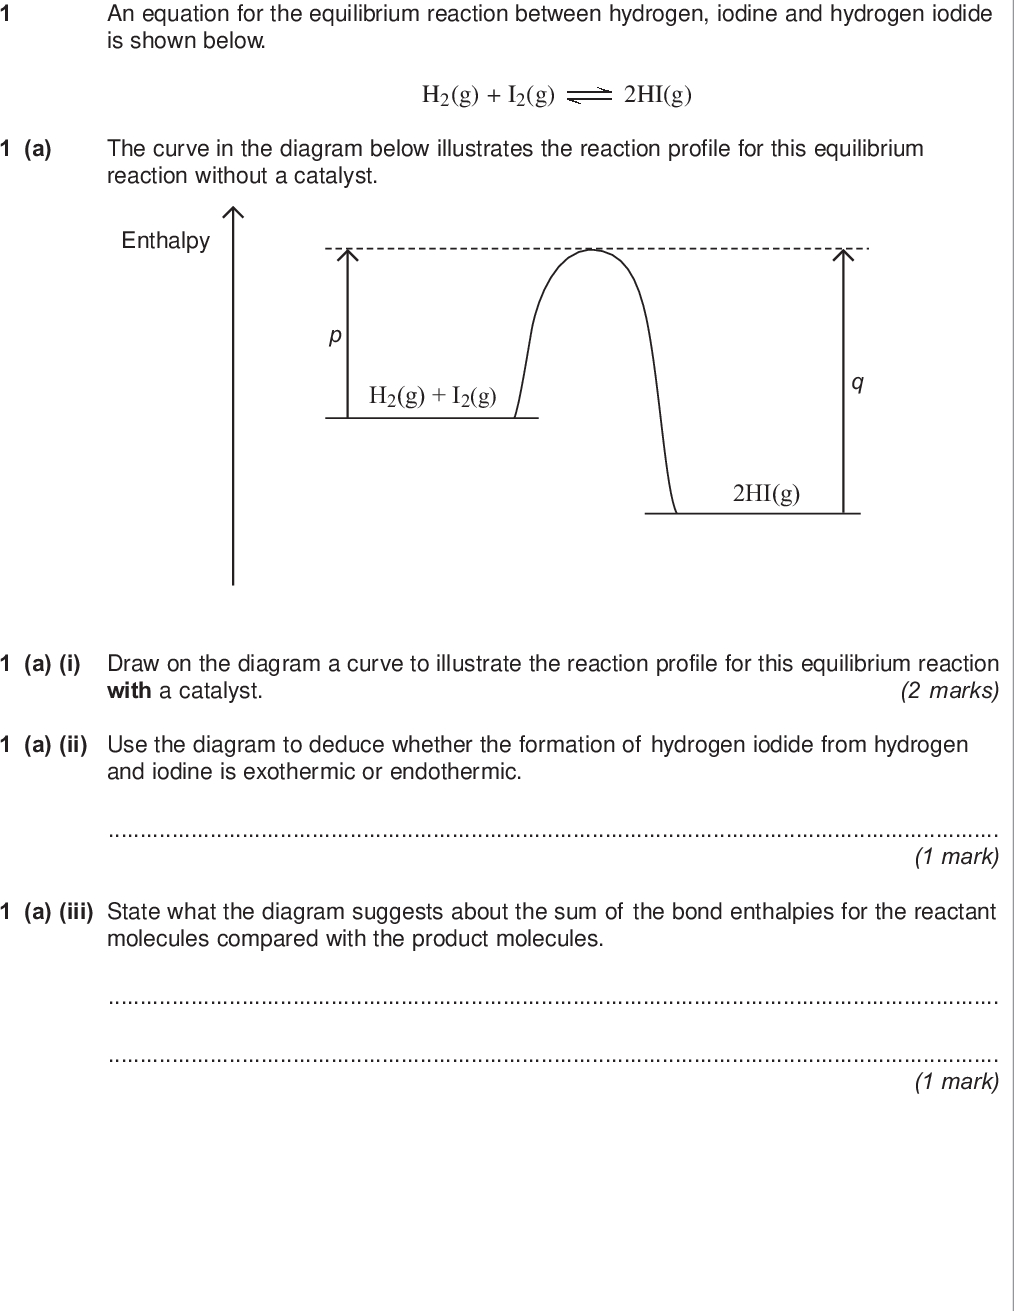 section a do not write outside the box answer all the questions in the spaces provided an equation for the equilibrium reaction between hydrogen iodine and hydrogen iodide is shown below a the curve in the diagram below illustrates the reaction profile for this equilibrium reaction without a catalyst h g i g hi g enthalpy h g i g hi g a i draw on the diagram a curve to illustrate the reaction profile for this equilibrium reaction marks with a catalyst a ii use the diagram to deduce whether the formation of hydrogen iodide from hydrogen and iodine is exothermic or endothermic mark a iii state what the diagram suggests about the sum of the bond enthalpies for the reactant molecules compared with the product molecules mark wmp jun chem do not write outside the box a iv in terms of p and q identify the following for this equilibrium without a catalyst a value for the activation energy for the forward reaction a value for the overall enthalpy change for the forward reaction marks b a mixture of h g and i g was allowed to reach equilibrium b i state the effect of a catalyst on the rate of attainment of this equilibrium mark b ii state and explain the effect of an increase in total pressure on the rate of attainment of this equilibrium effect of an increase in pressure on rate explanation marks turn over for the next question turn over wmp jun chem